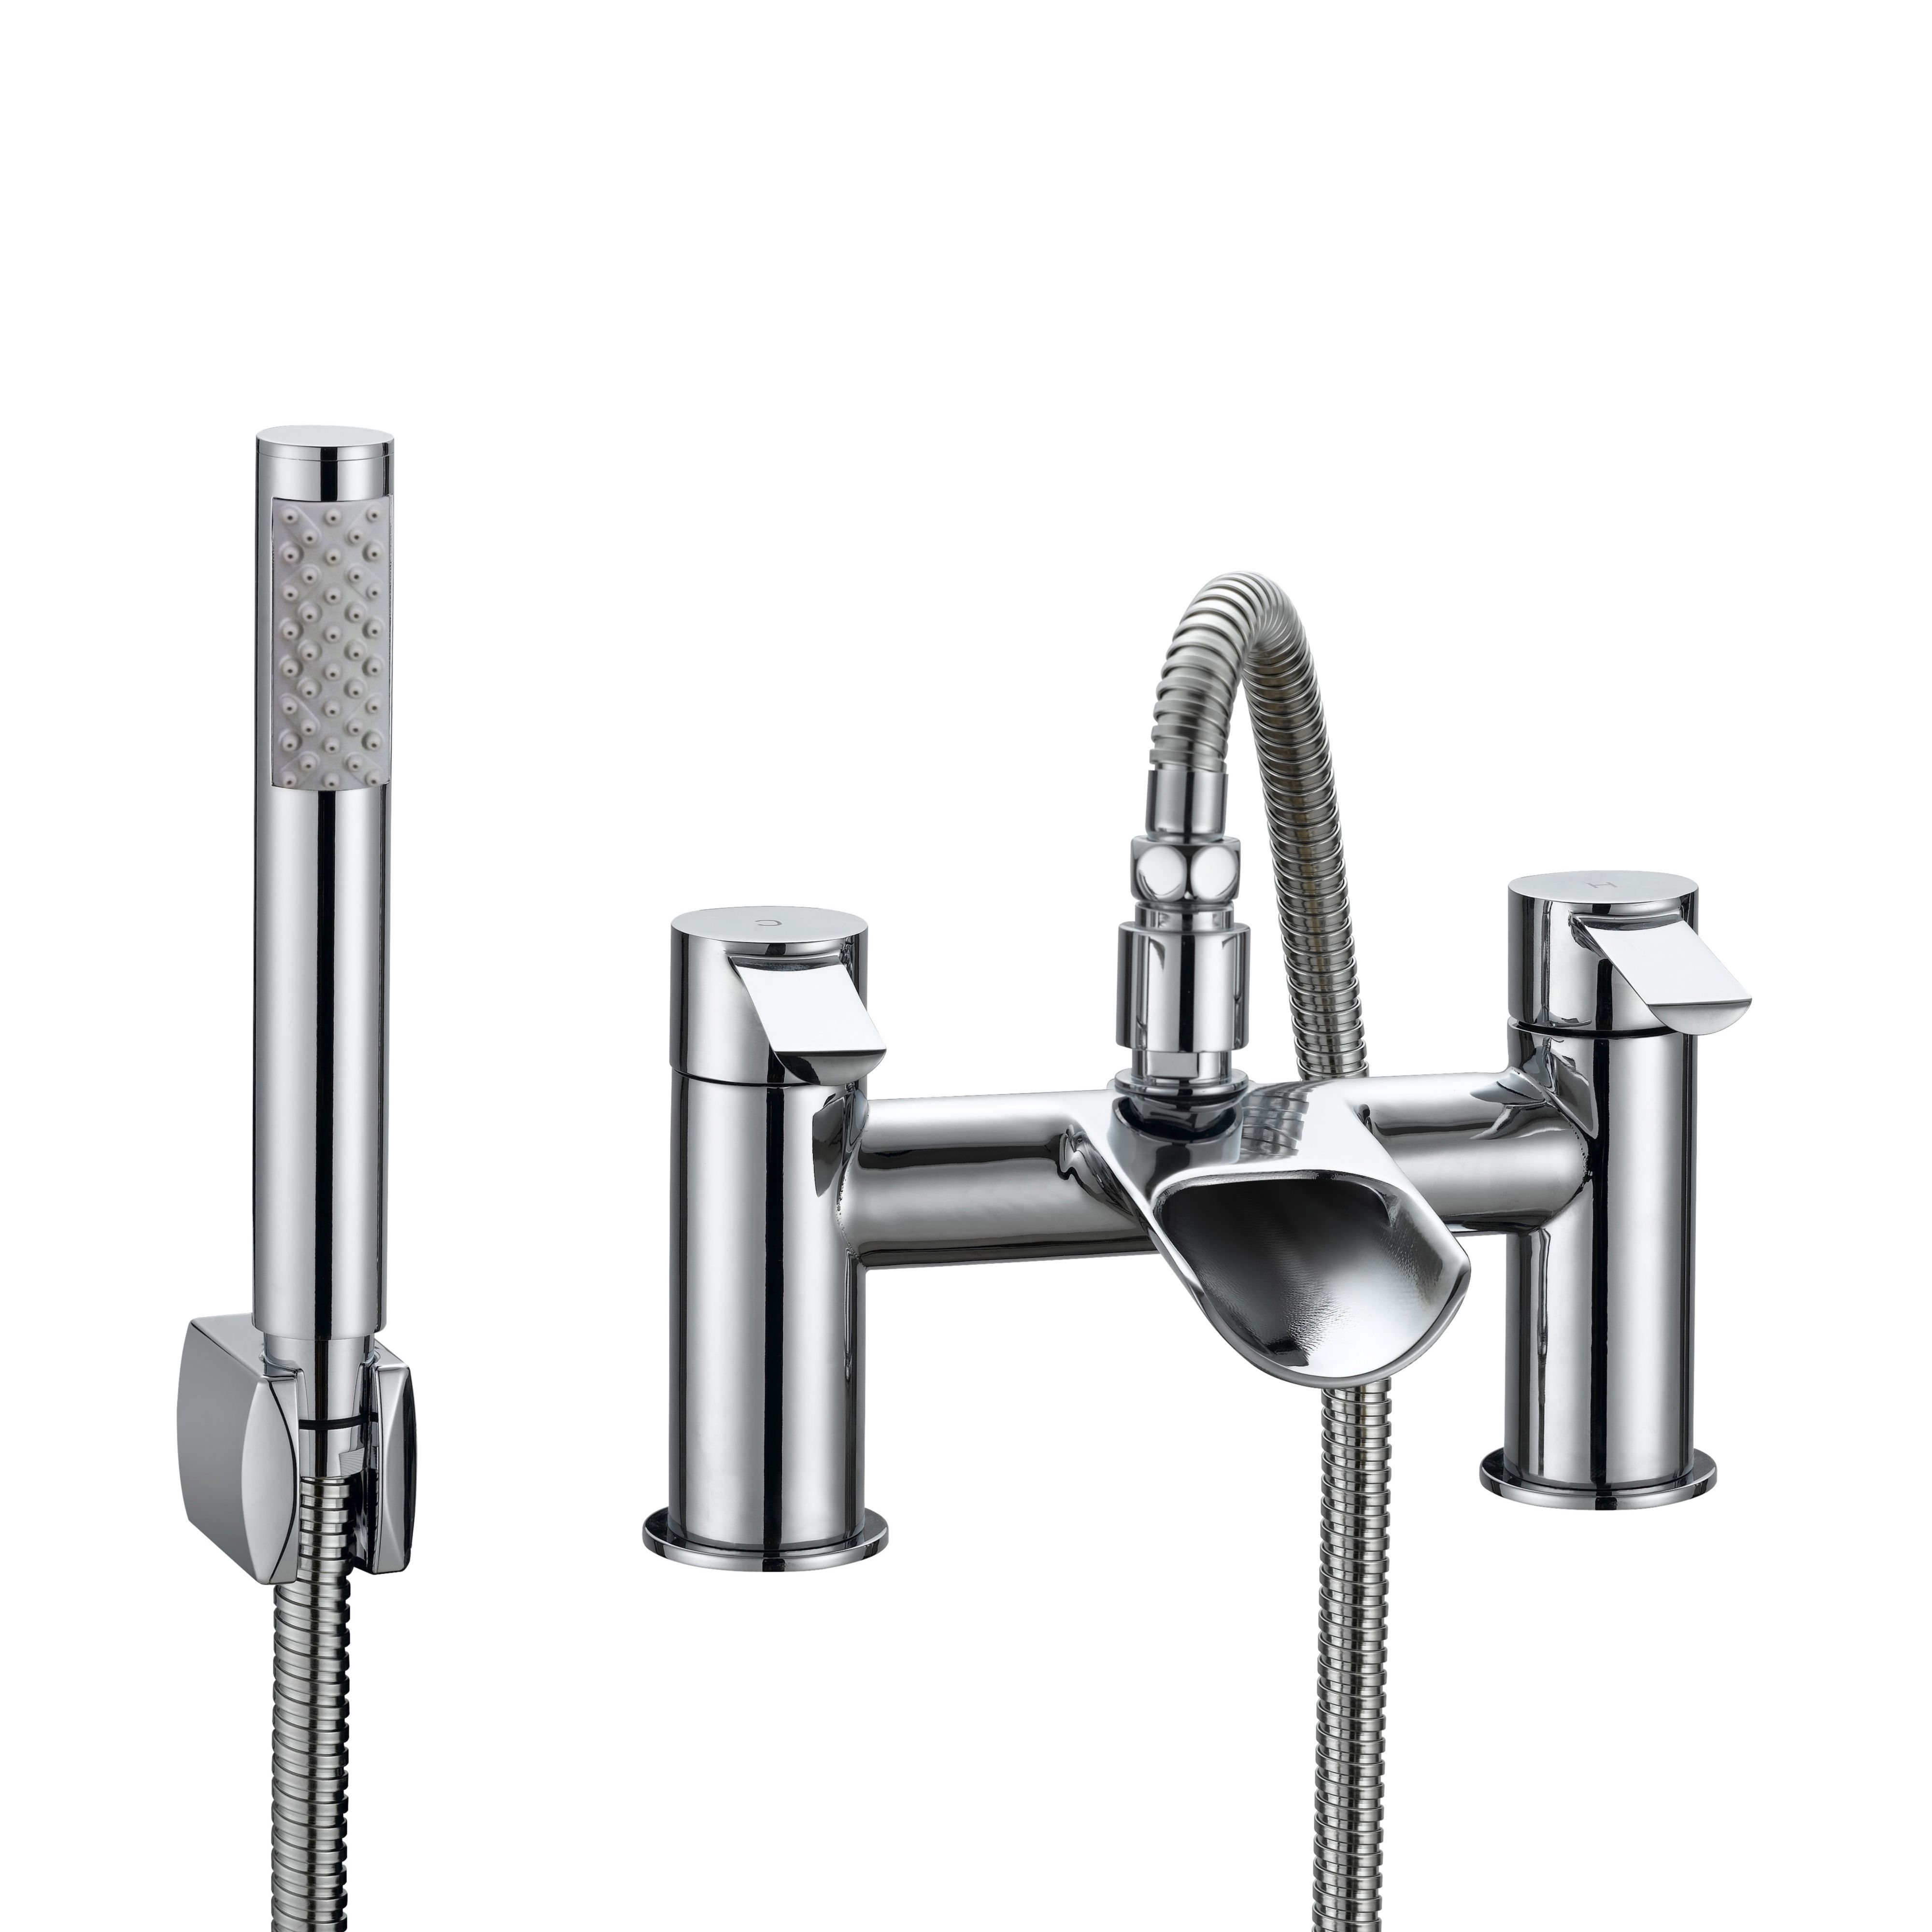 Cooke Amp Lewis Bamboo Chrome Bath Shower Mixer Tap